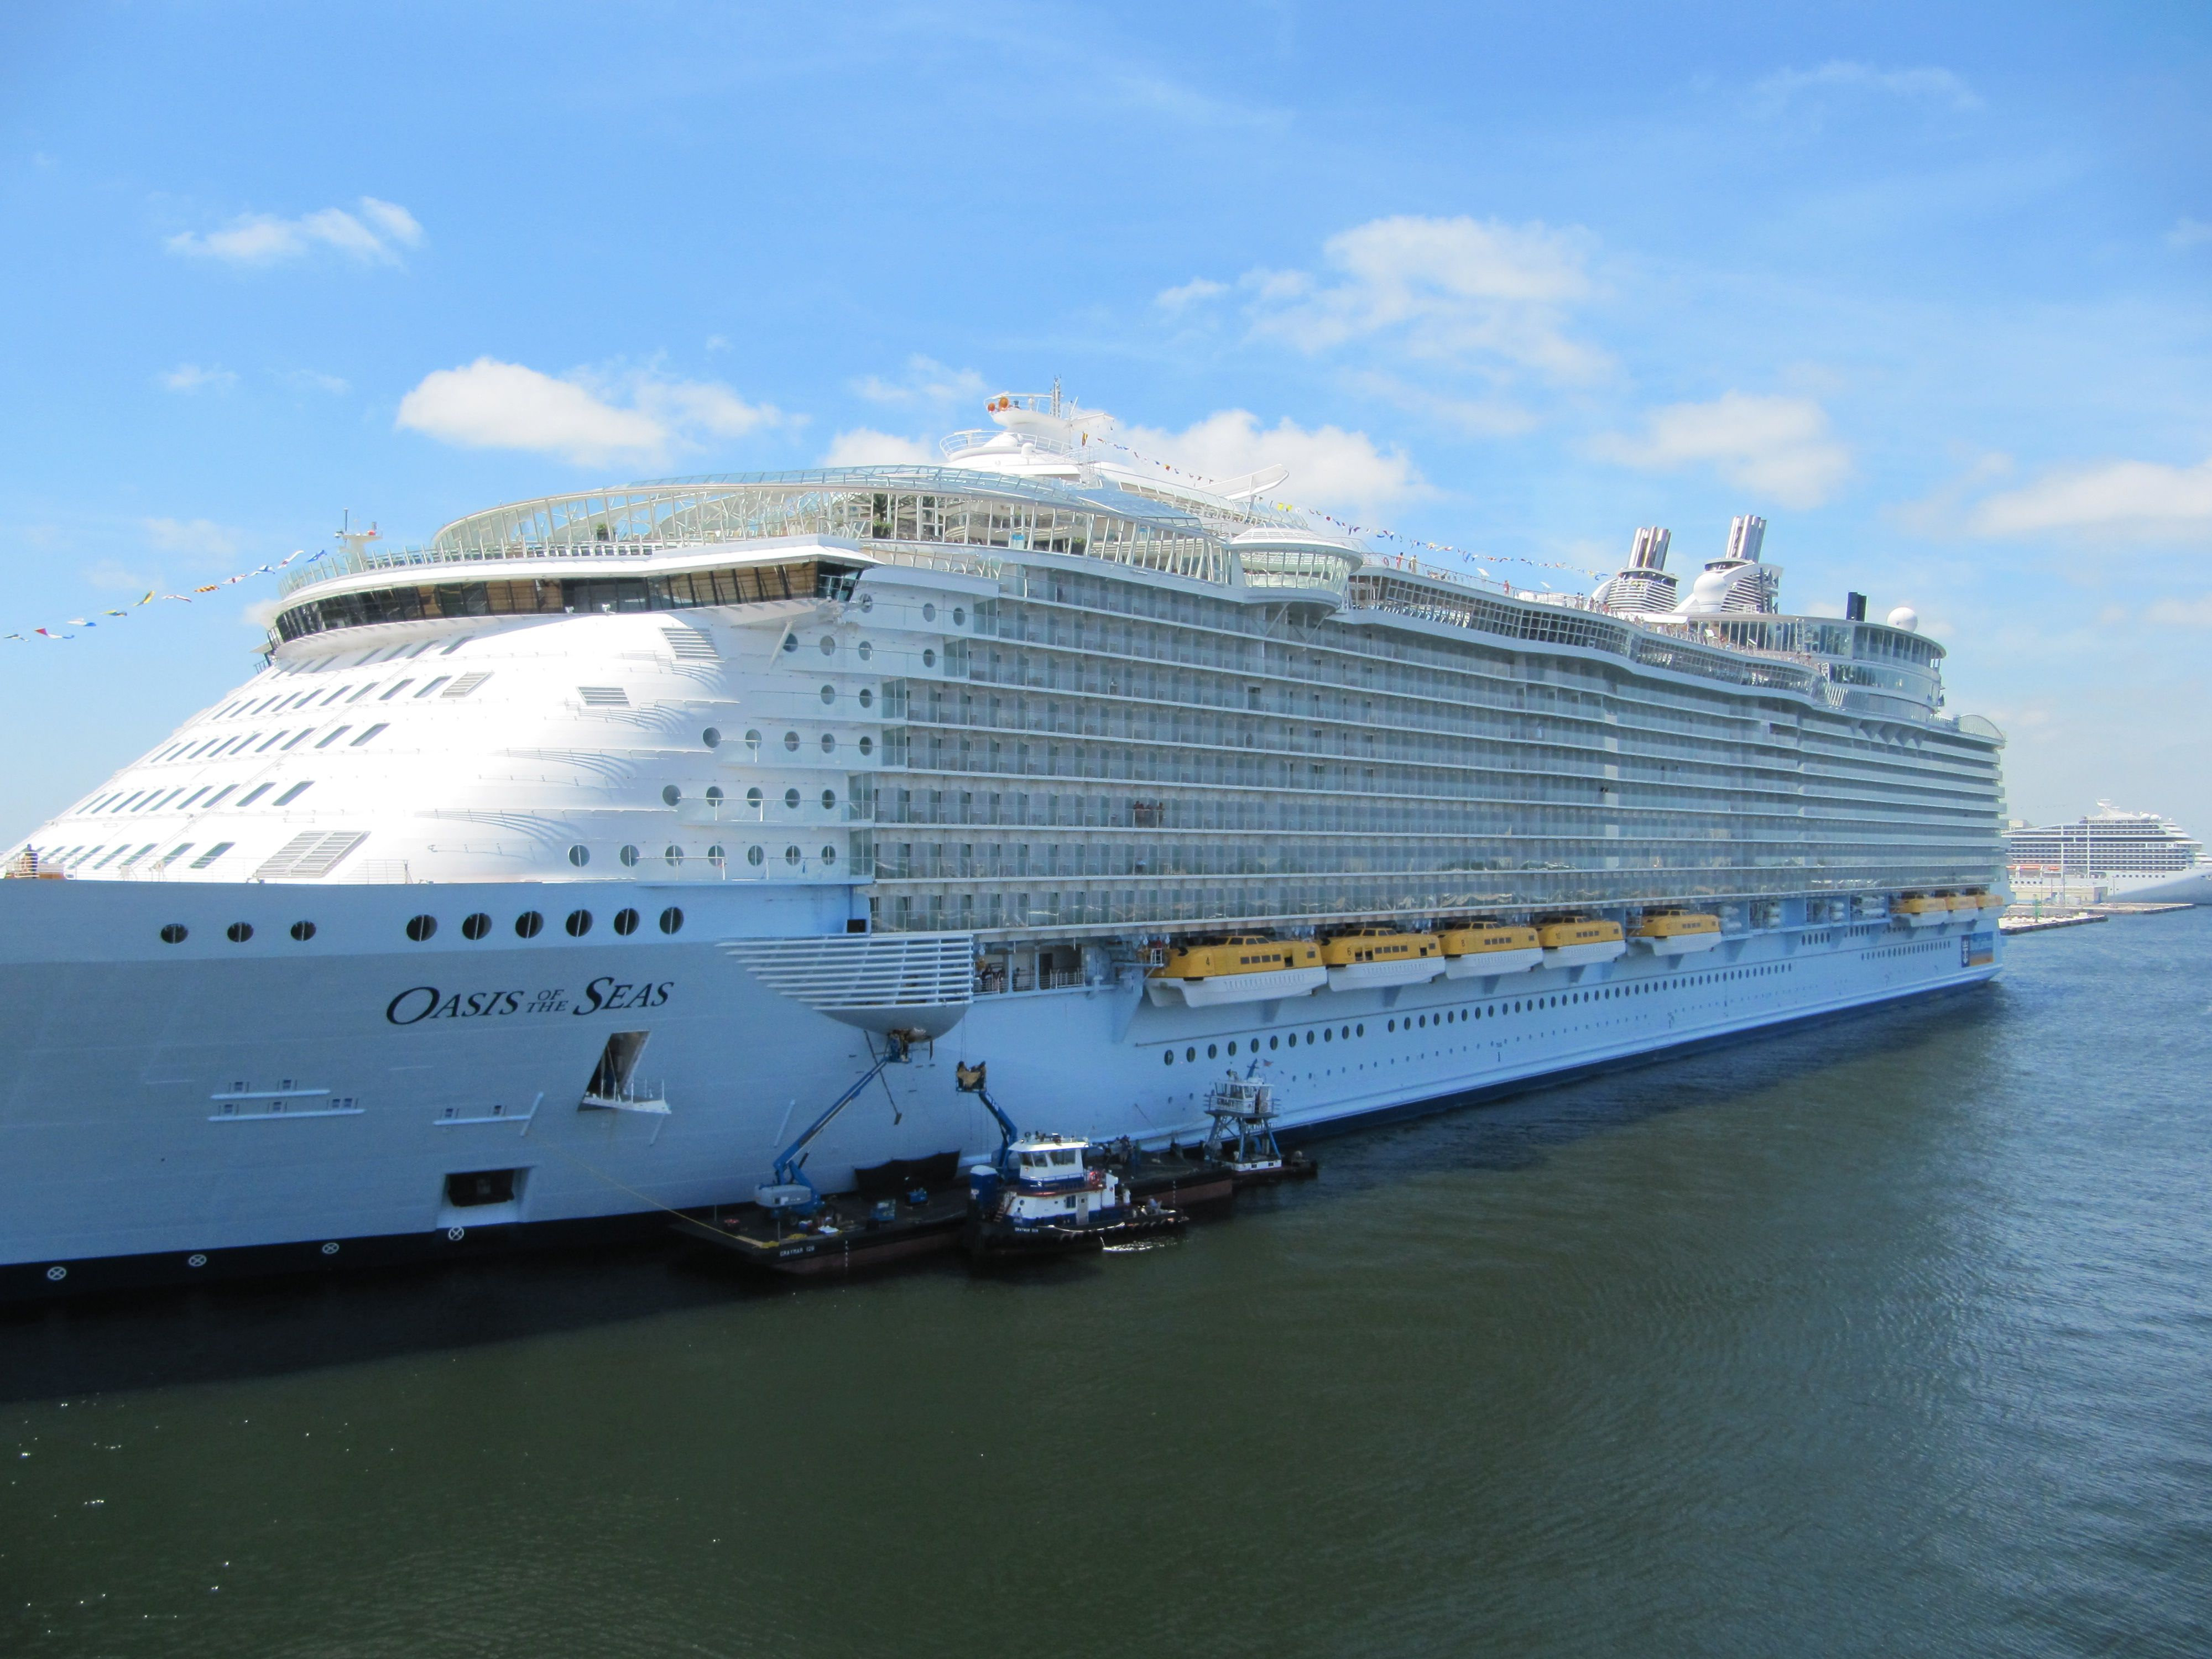 Oasis of the Seas - Royal Caribbean cruise ship.  2nd largest cruise ship - holds 6,400 passengers